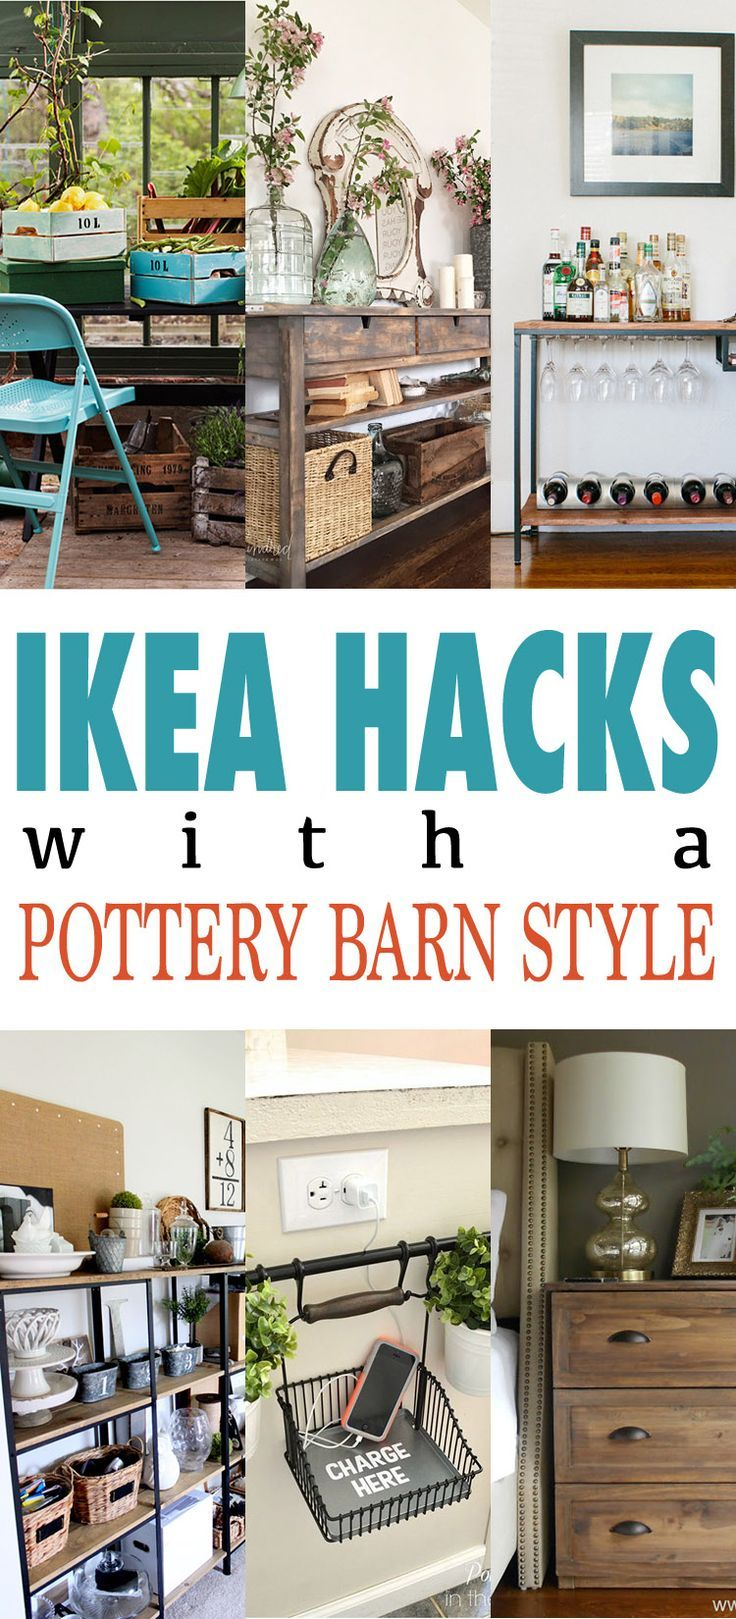 ikea hacks with a pottery barn style the cottage market home sweet domicile pinterest. Black Bedroom Furniture Sets. Home Design Ideas